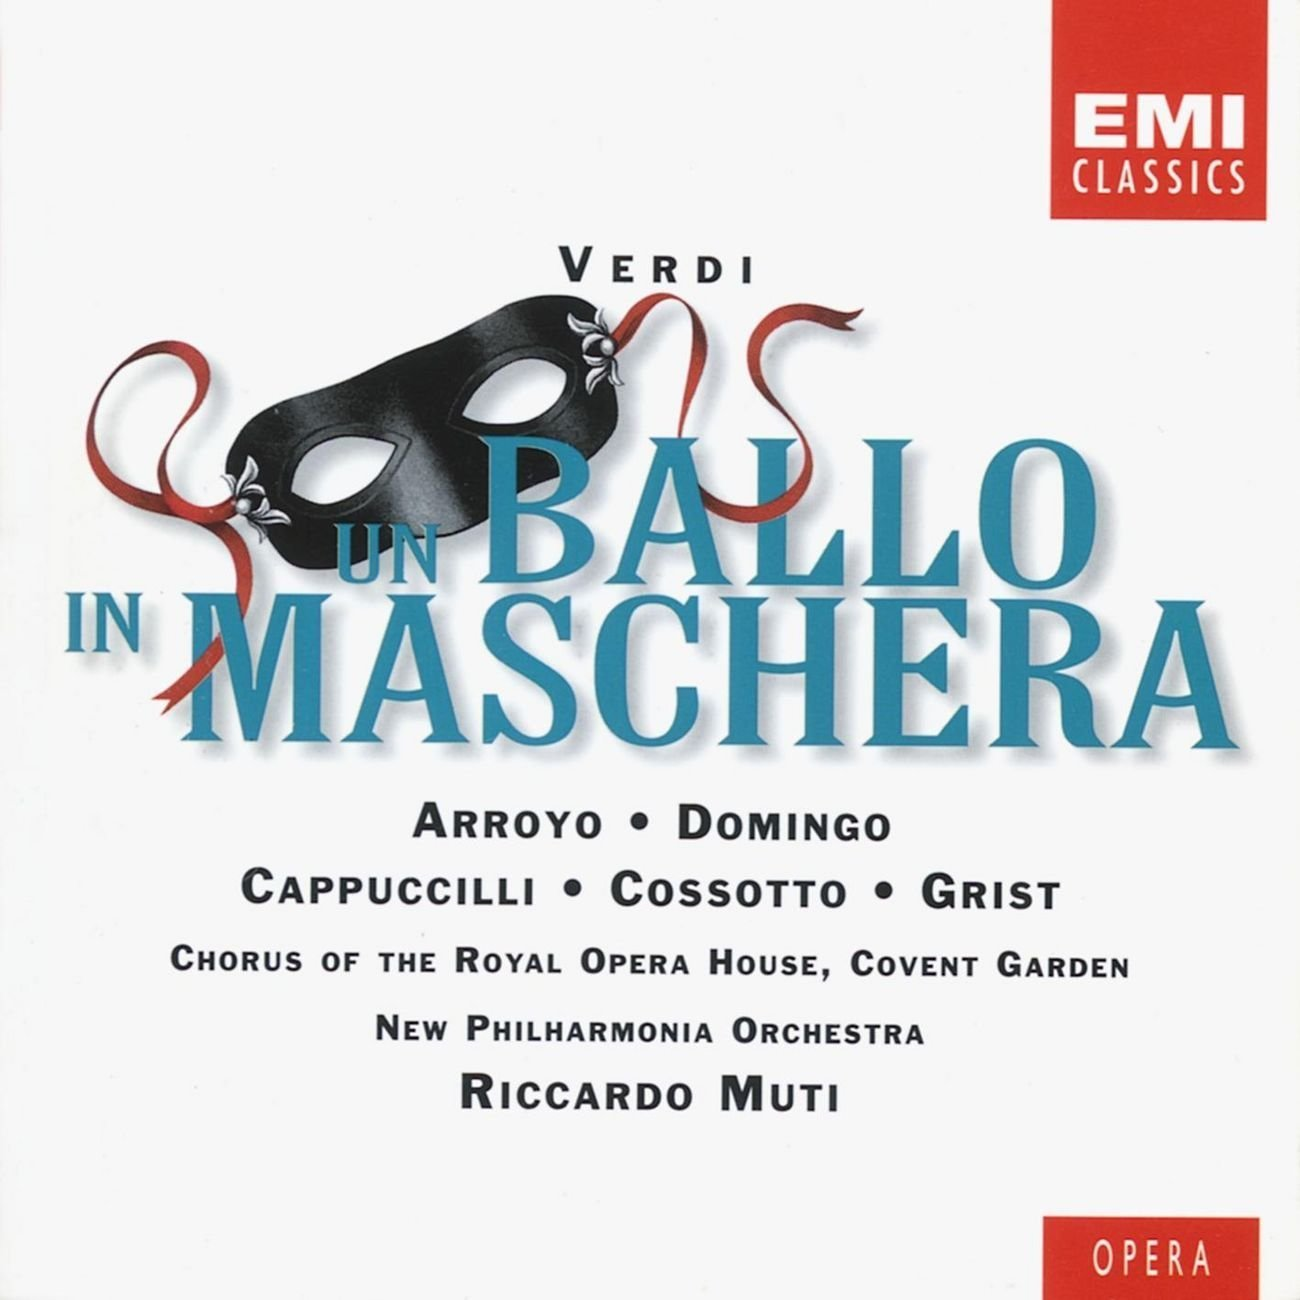 Giuseppe Verdi: Un Ballo in Maschera (A Masked Ball) [With Complete Italian Libretto and English Translation] [Martina Arroyo, Reri Grist, Fiorenza Cossotto, Placido Domingo, Piero Cappuccilli, Gwynne Howell, Richard Van Allan; New Philharmonia Orchestra; Chorus of the Royal Opera House, Covent Garden; Riccardo Muti]